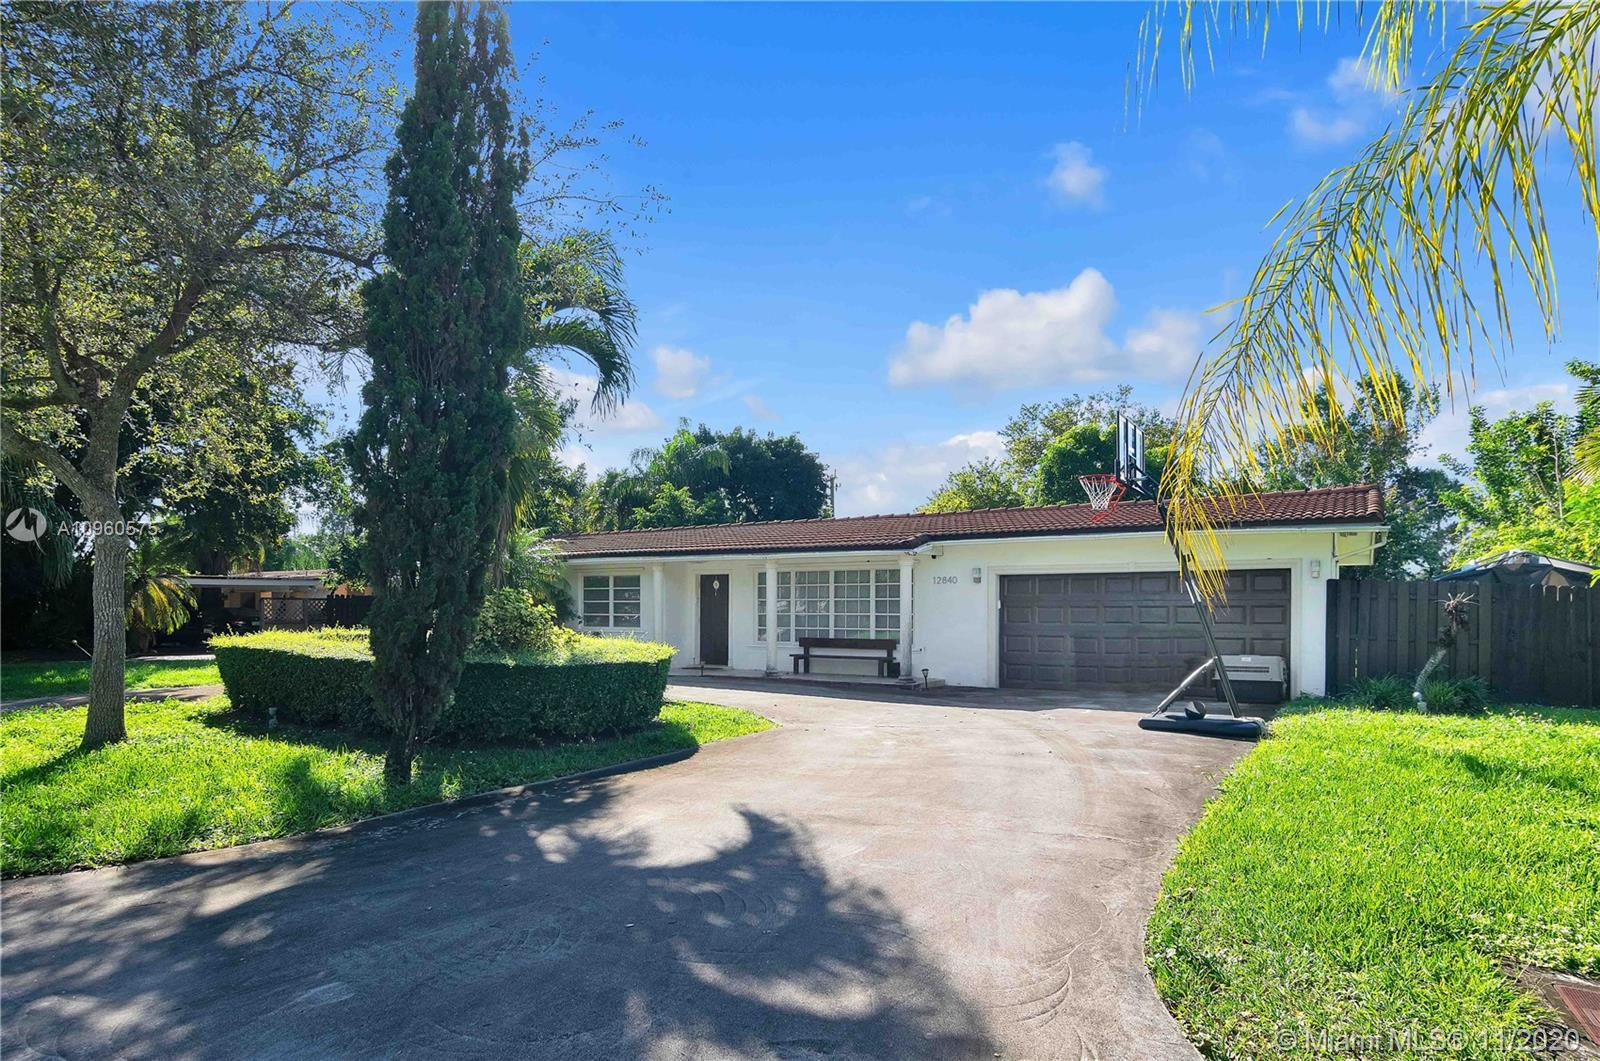 This beautiful home completely remodeled in desirable Pinecrest, the place to raise a family with th